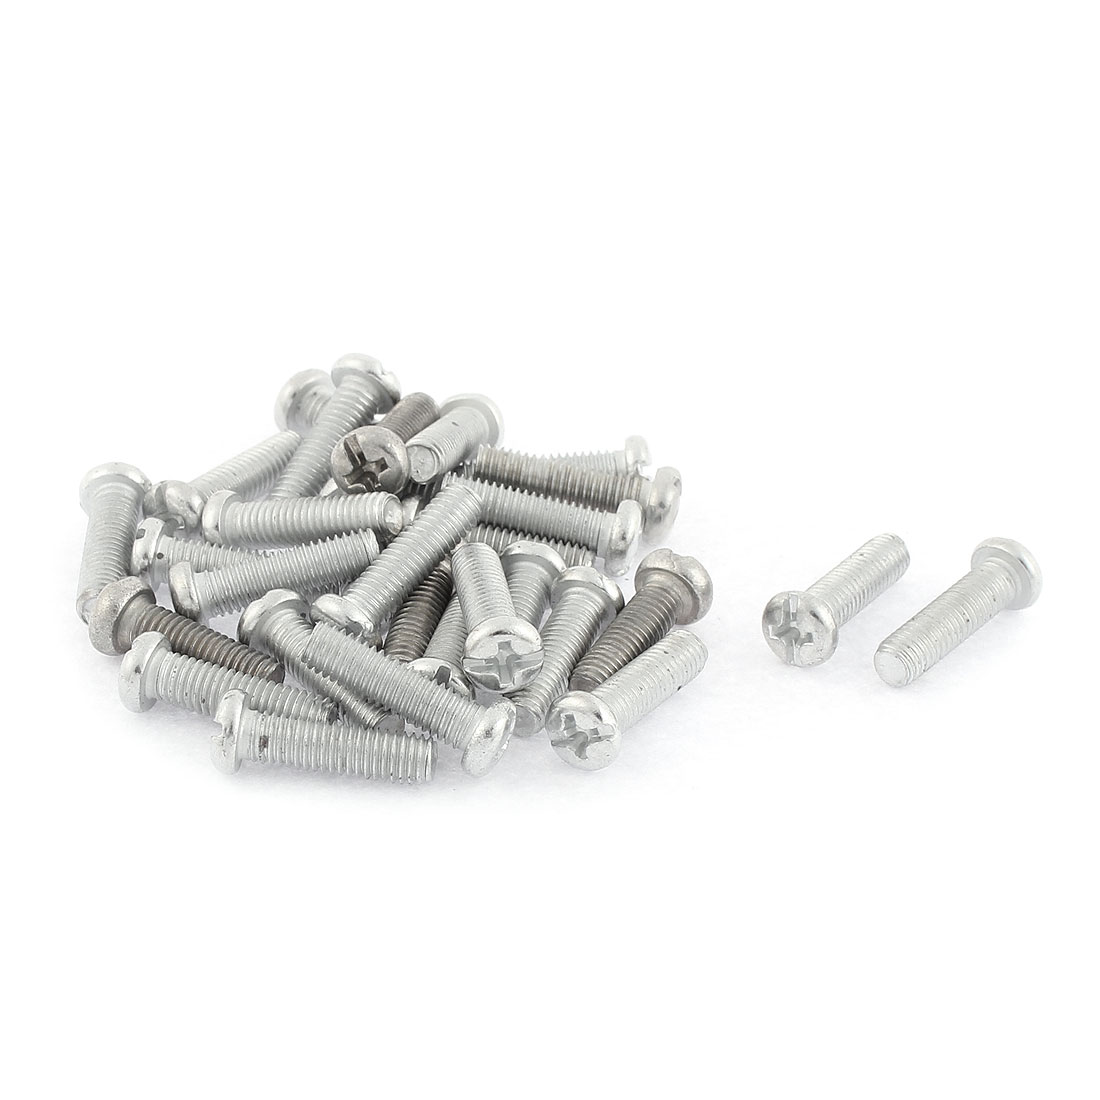 M5 x 20mm Kitchenware Pot Pan Round Head Mounting Phillips Screws 30 Pcs